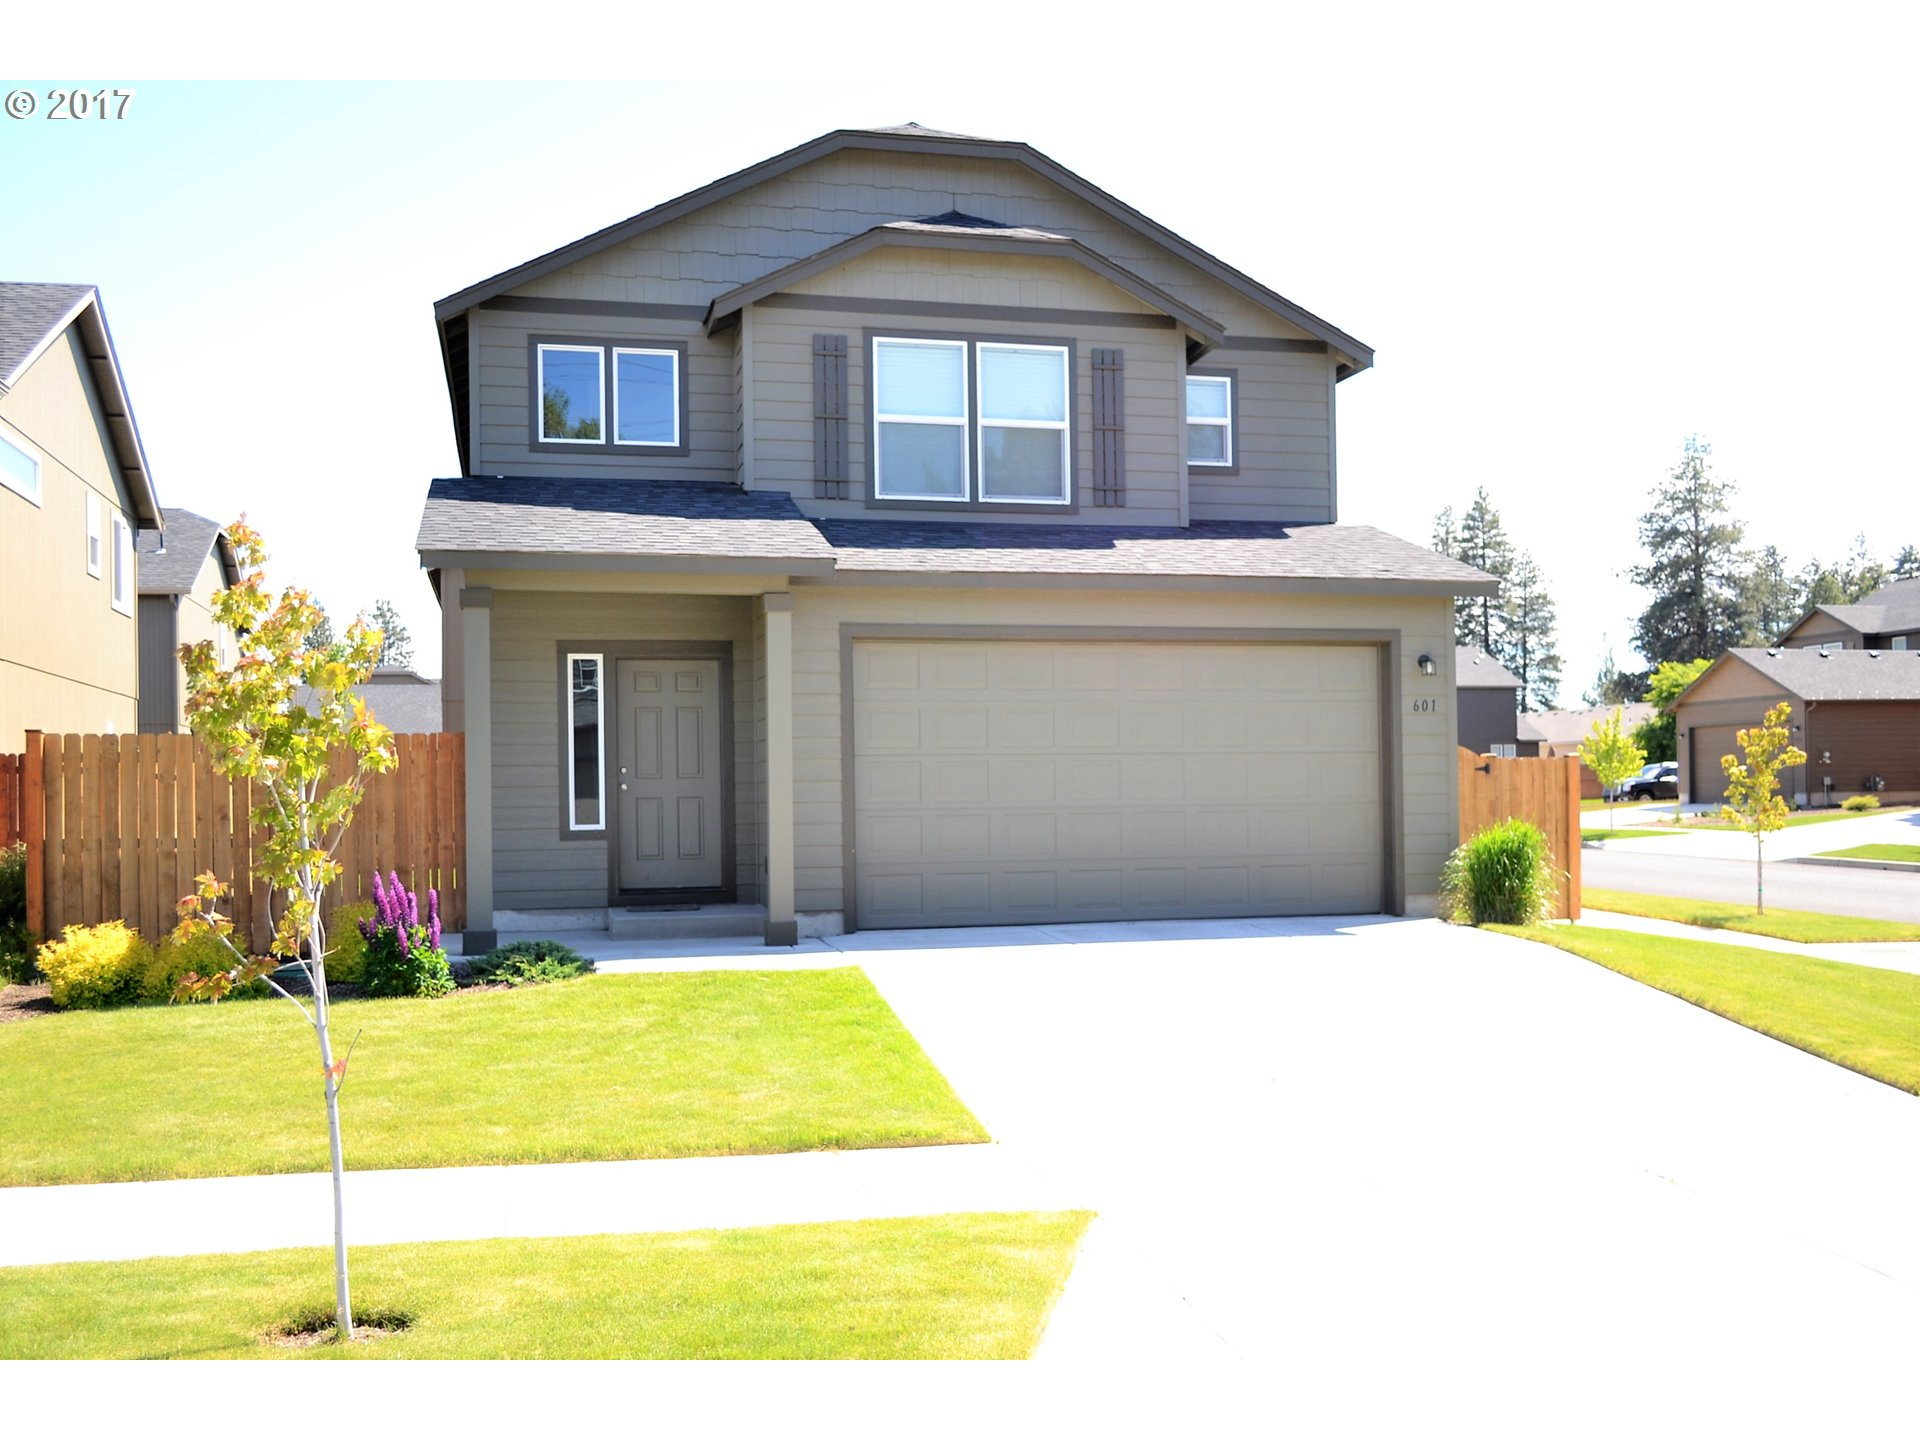 601 SE GLENEDEN PL Bend, OR 97702 - MLS #: 17674515